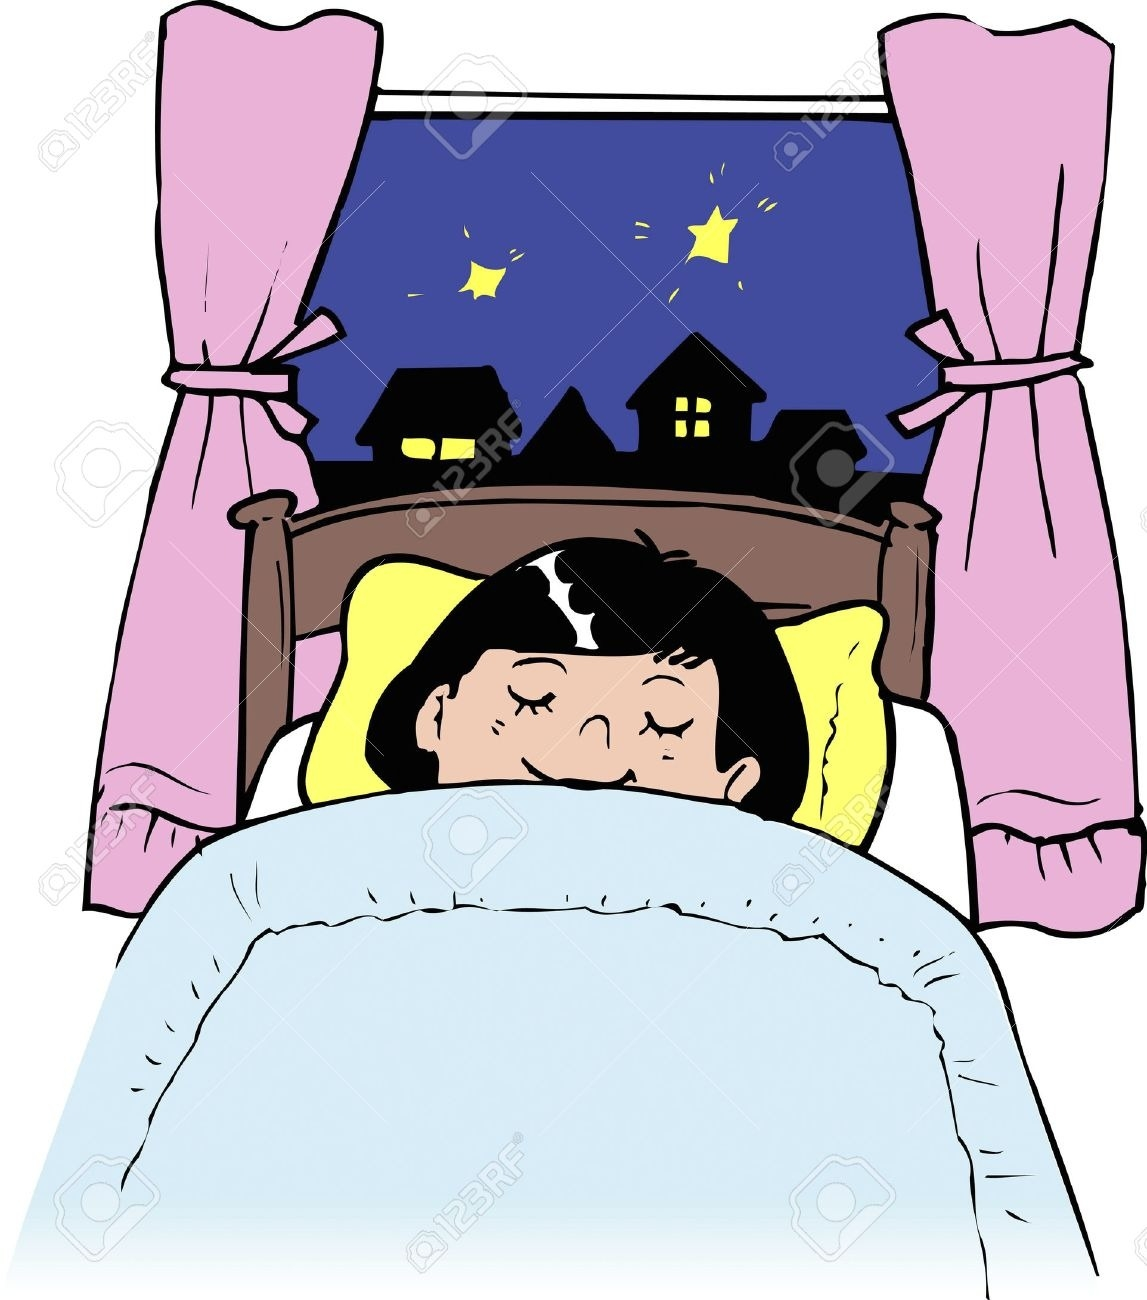 261 Going To Bed free clipart.